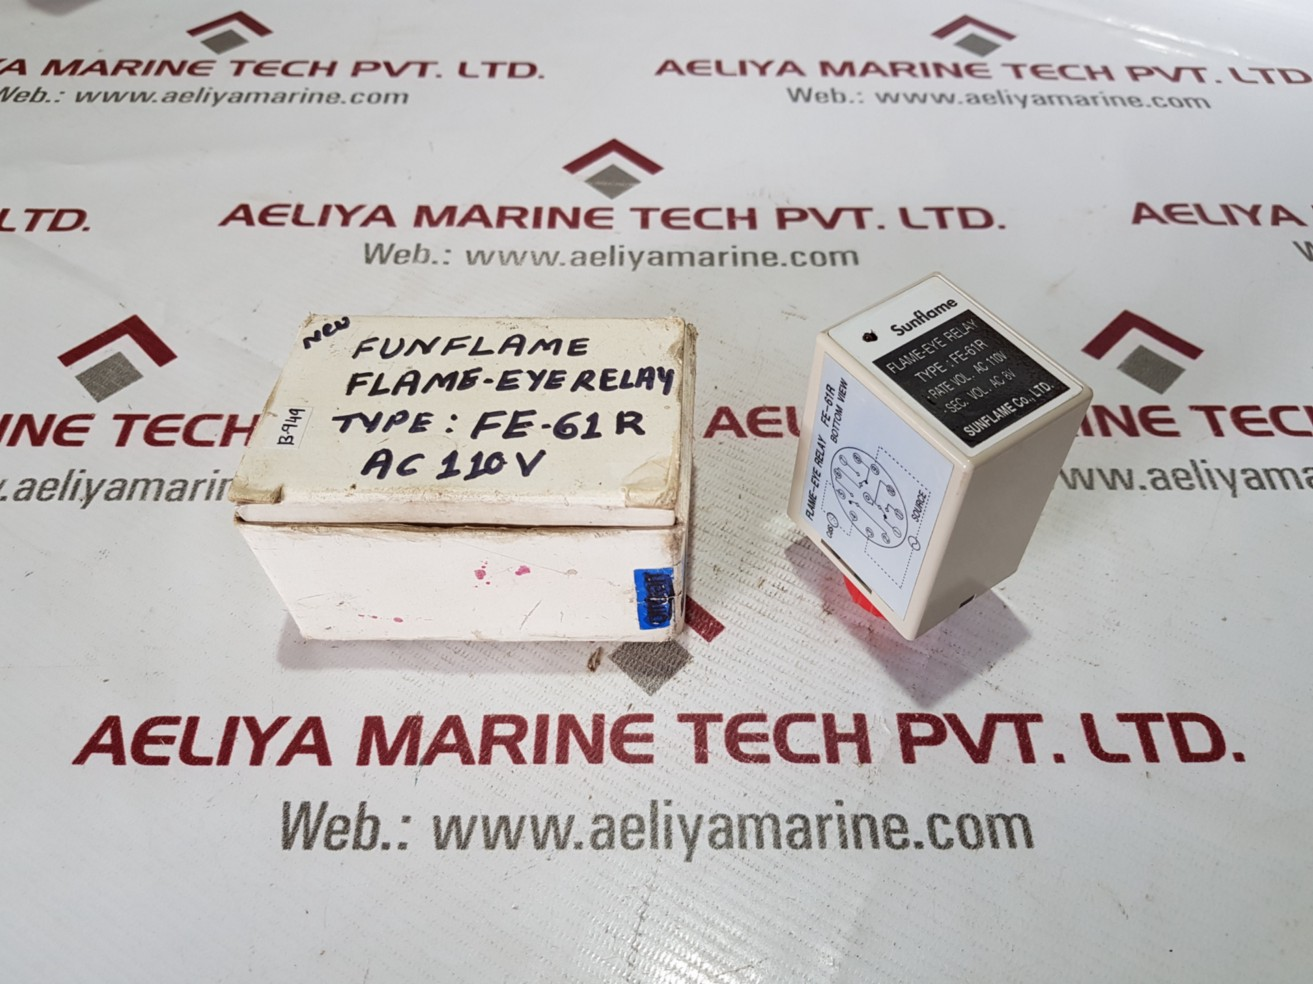 SUNFLAME FE-61R FLAME-EYE RELAY - Aeliya Marine Tech Pvt Ltd - Medium